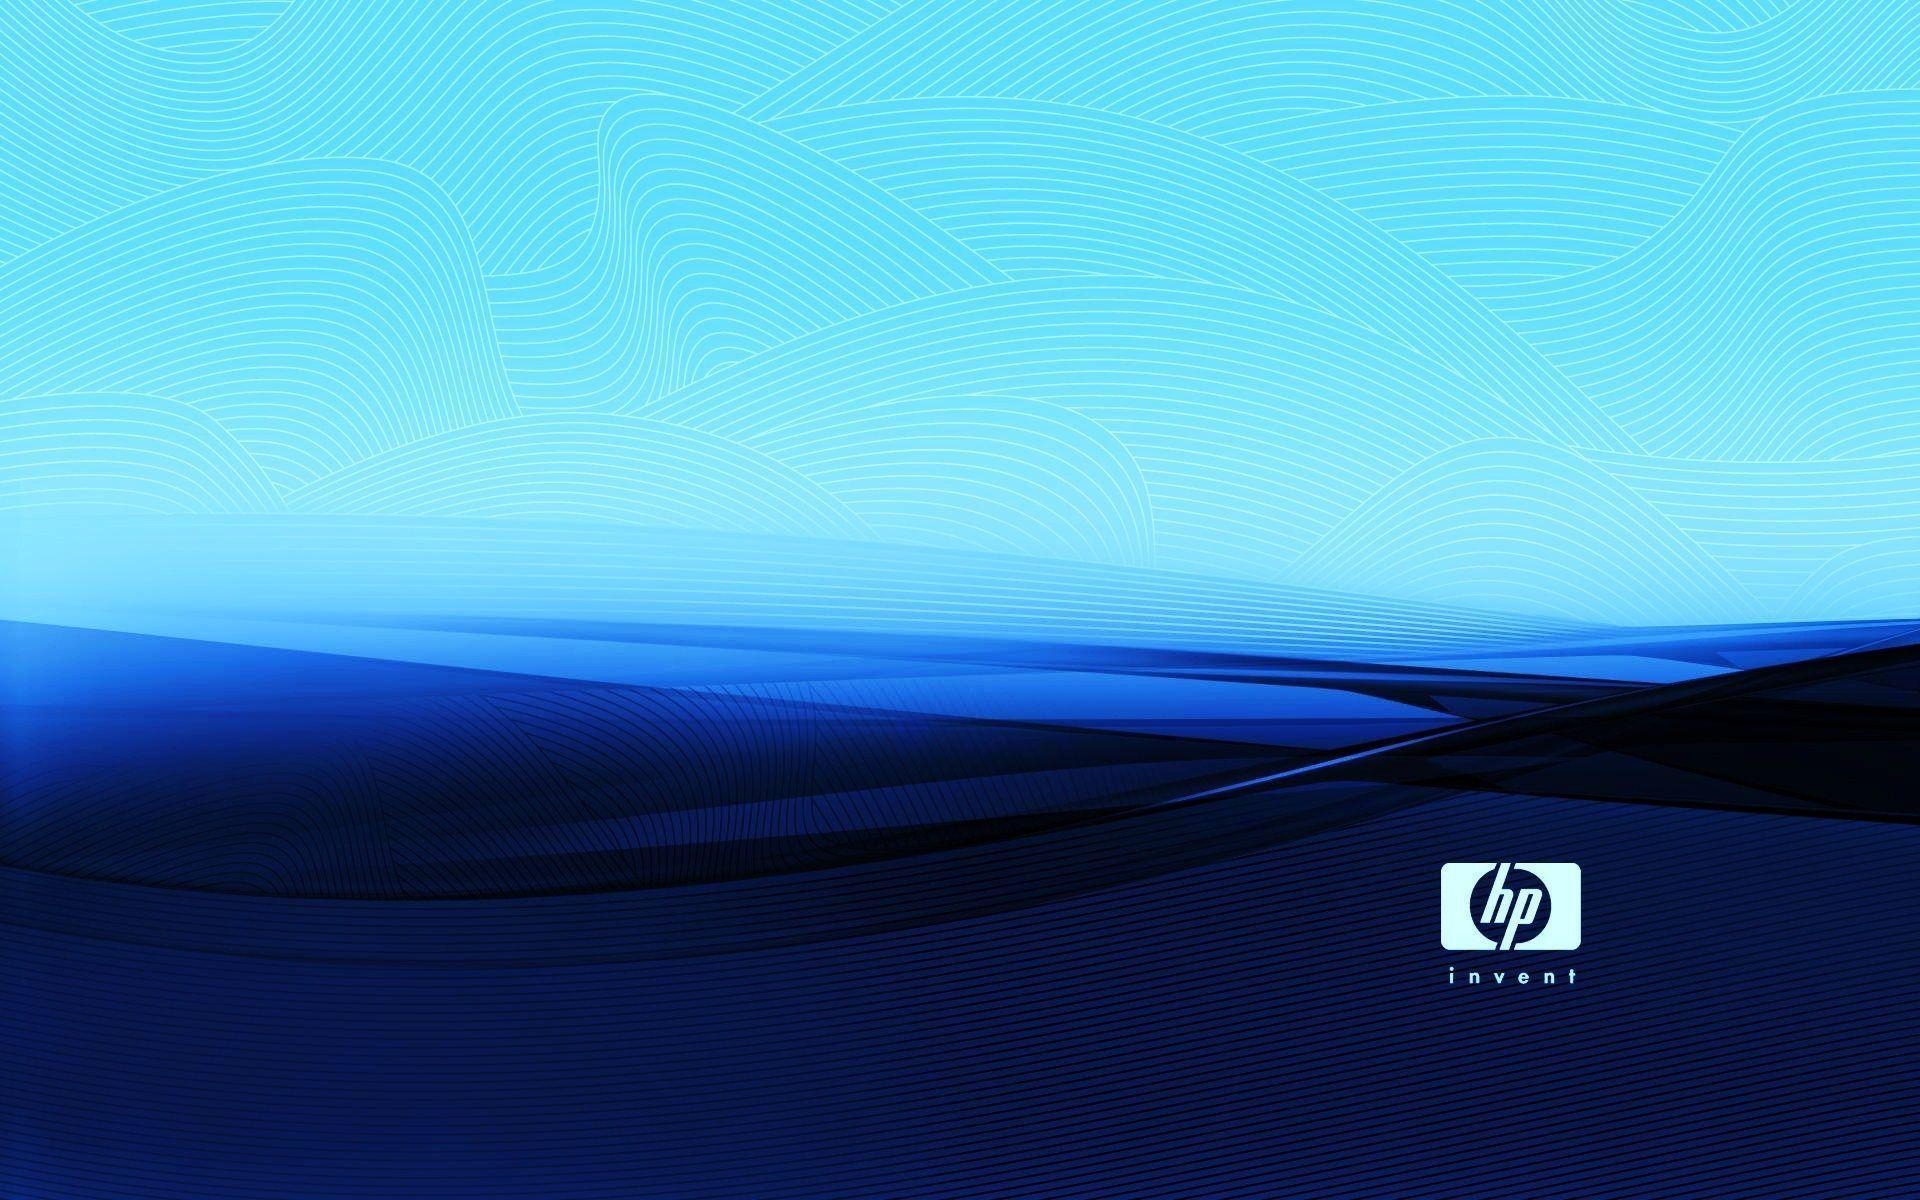 hp laptop wallpapers - wallpaper cave